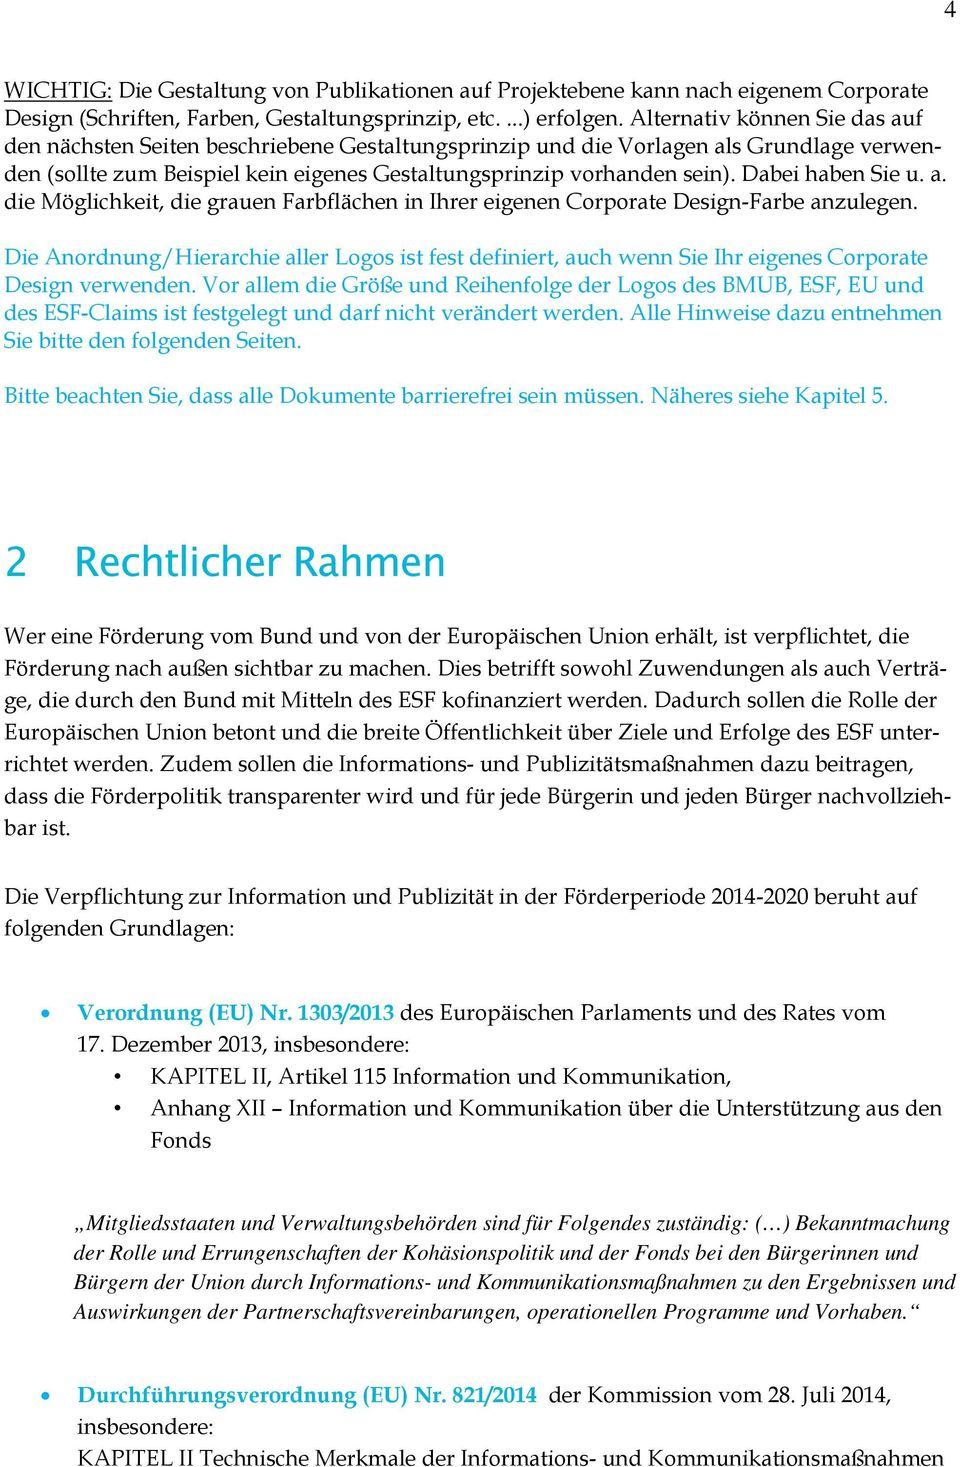 Fein Partnerschaftsvereinbarung Vorlage Pdf Ideen - Entry Level ...